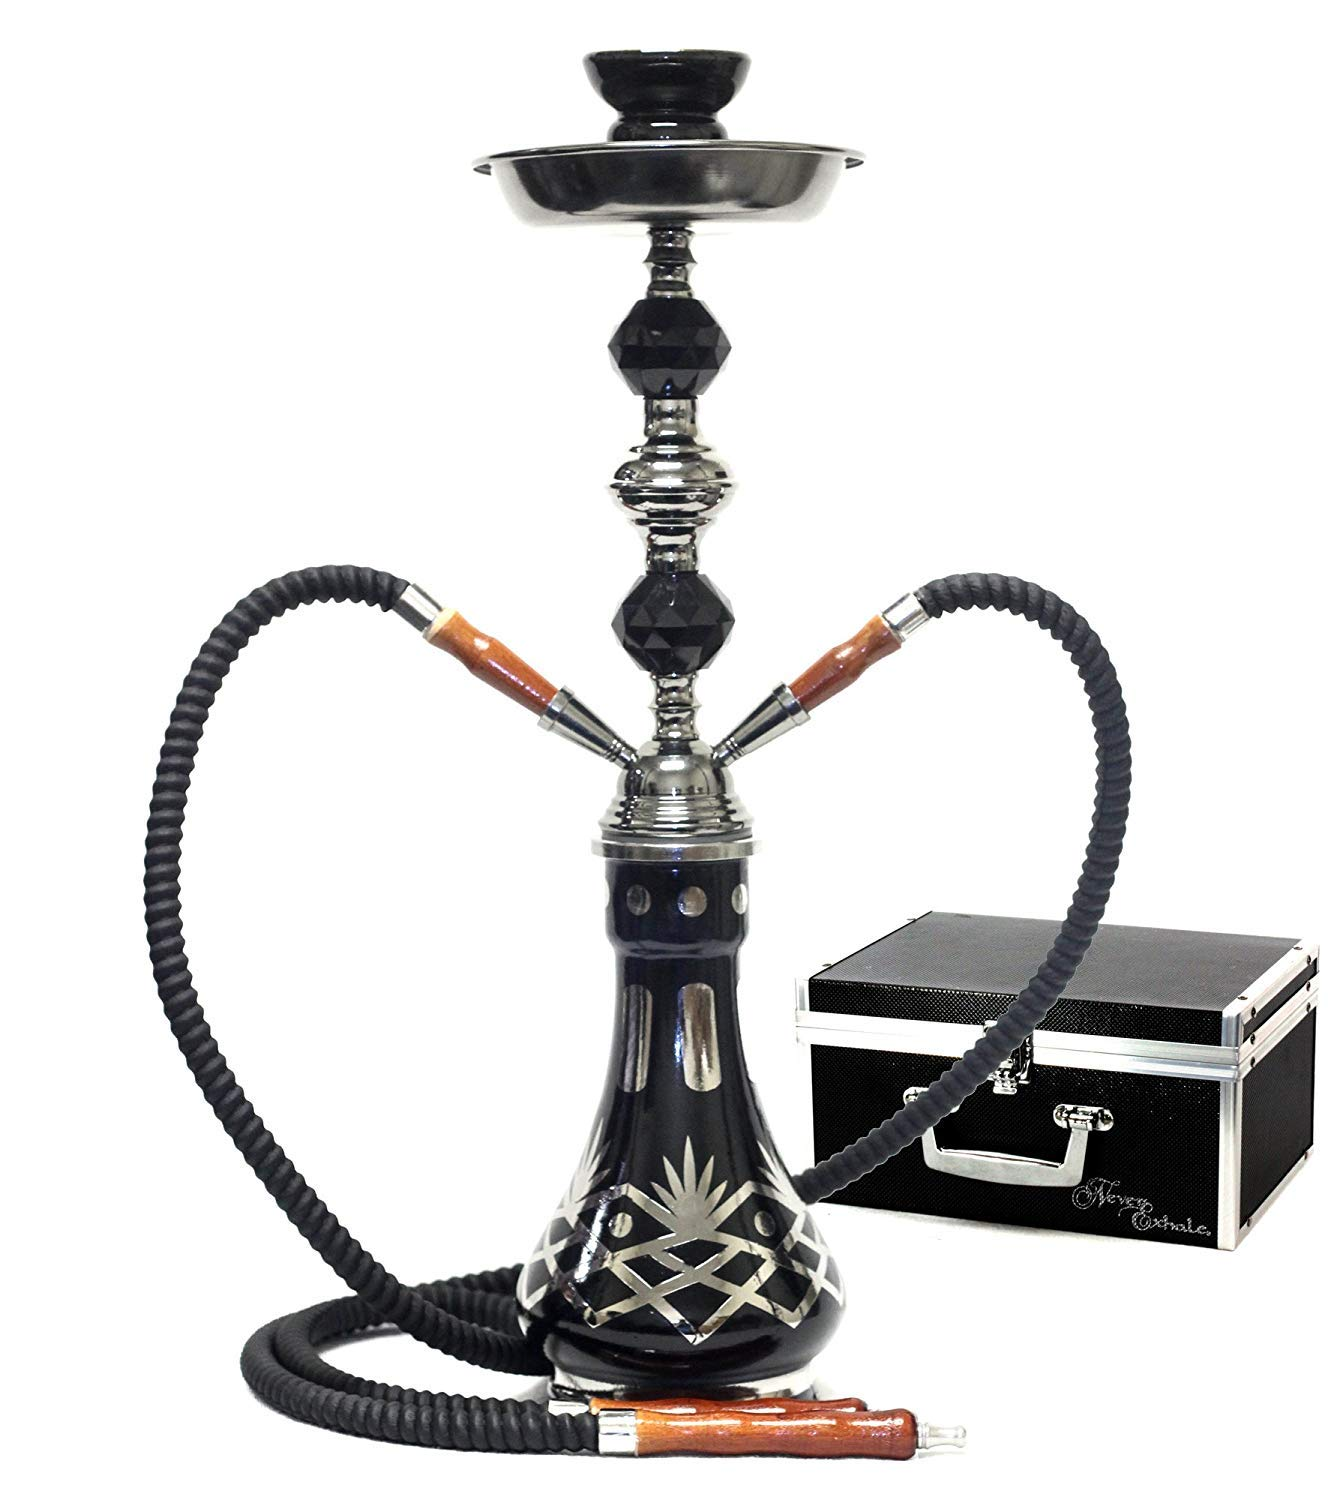 GStar 18'' Deluxe 2 Hose Hookah with Optional Carrying Case (Akimbo Black w/Case) by GStar